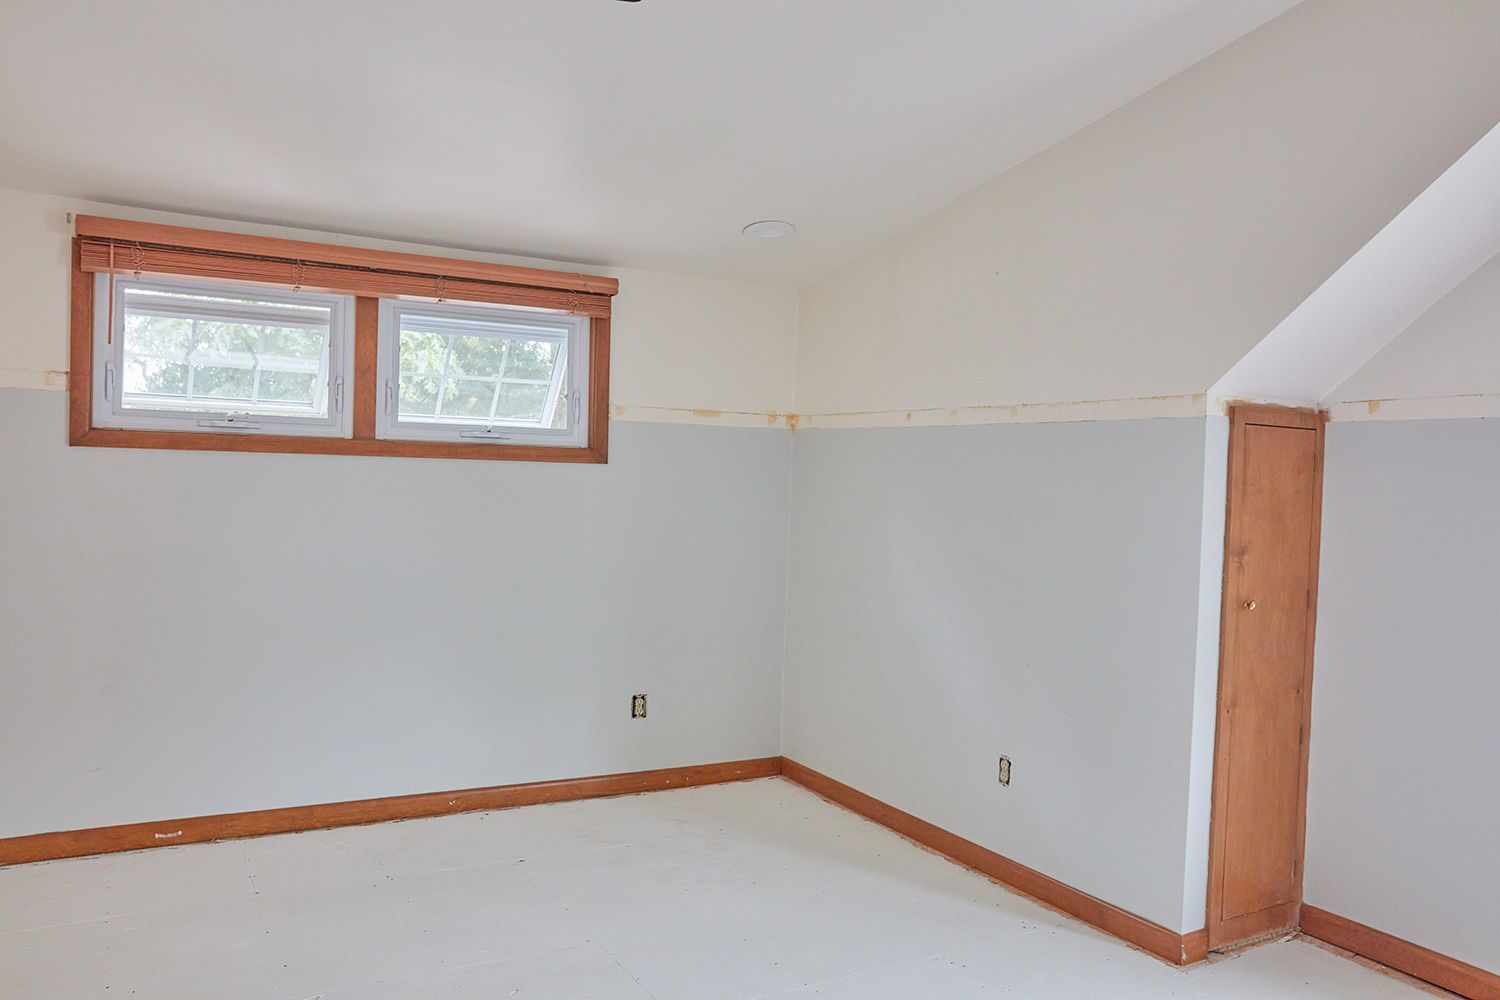 Remove all furniture before painting